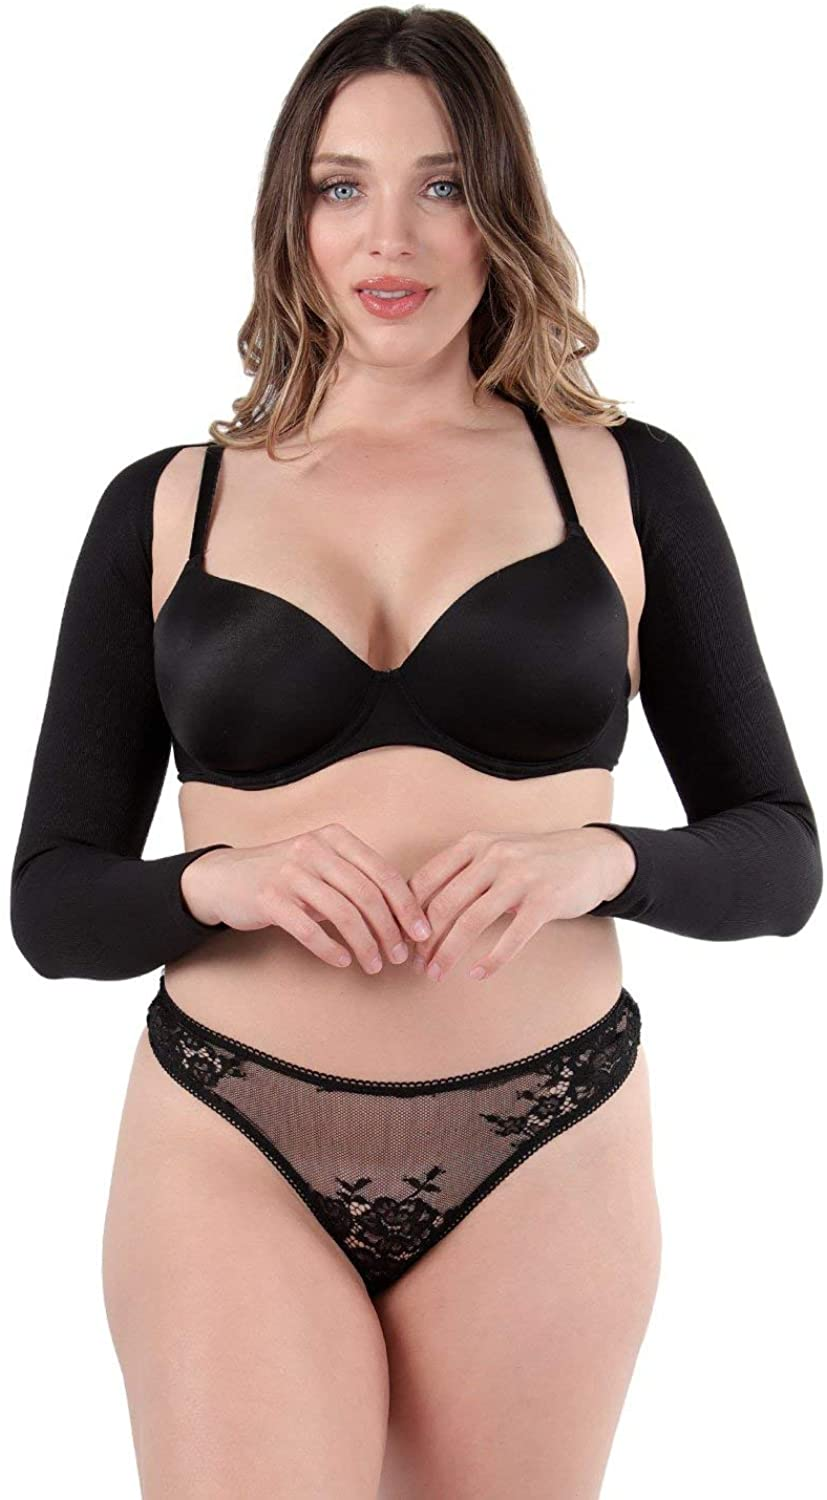 10 best shapewear must haves for all sizes instant slimming herstylecode 7 10 Best Shapewear Must-Haves for All Sizes - Instant Slimming!